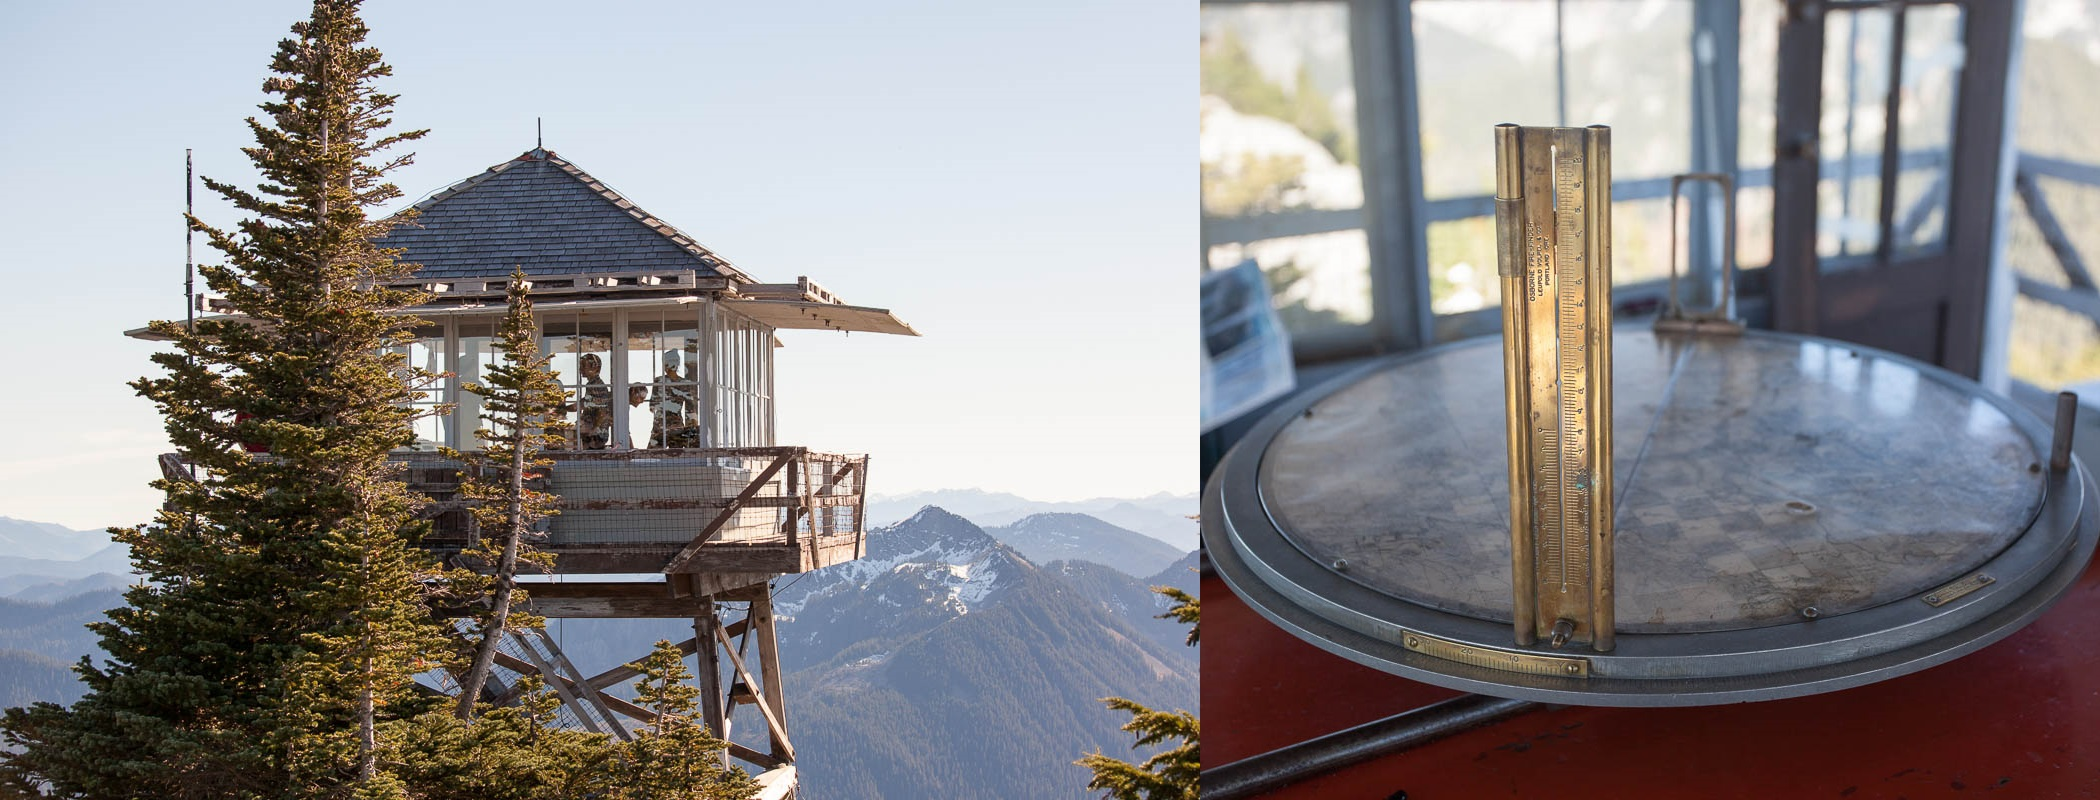 Lego challenge 9 fire lookout tower tom alphin for Fire lookout tower plans